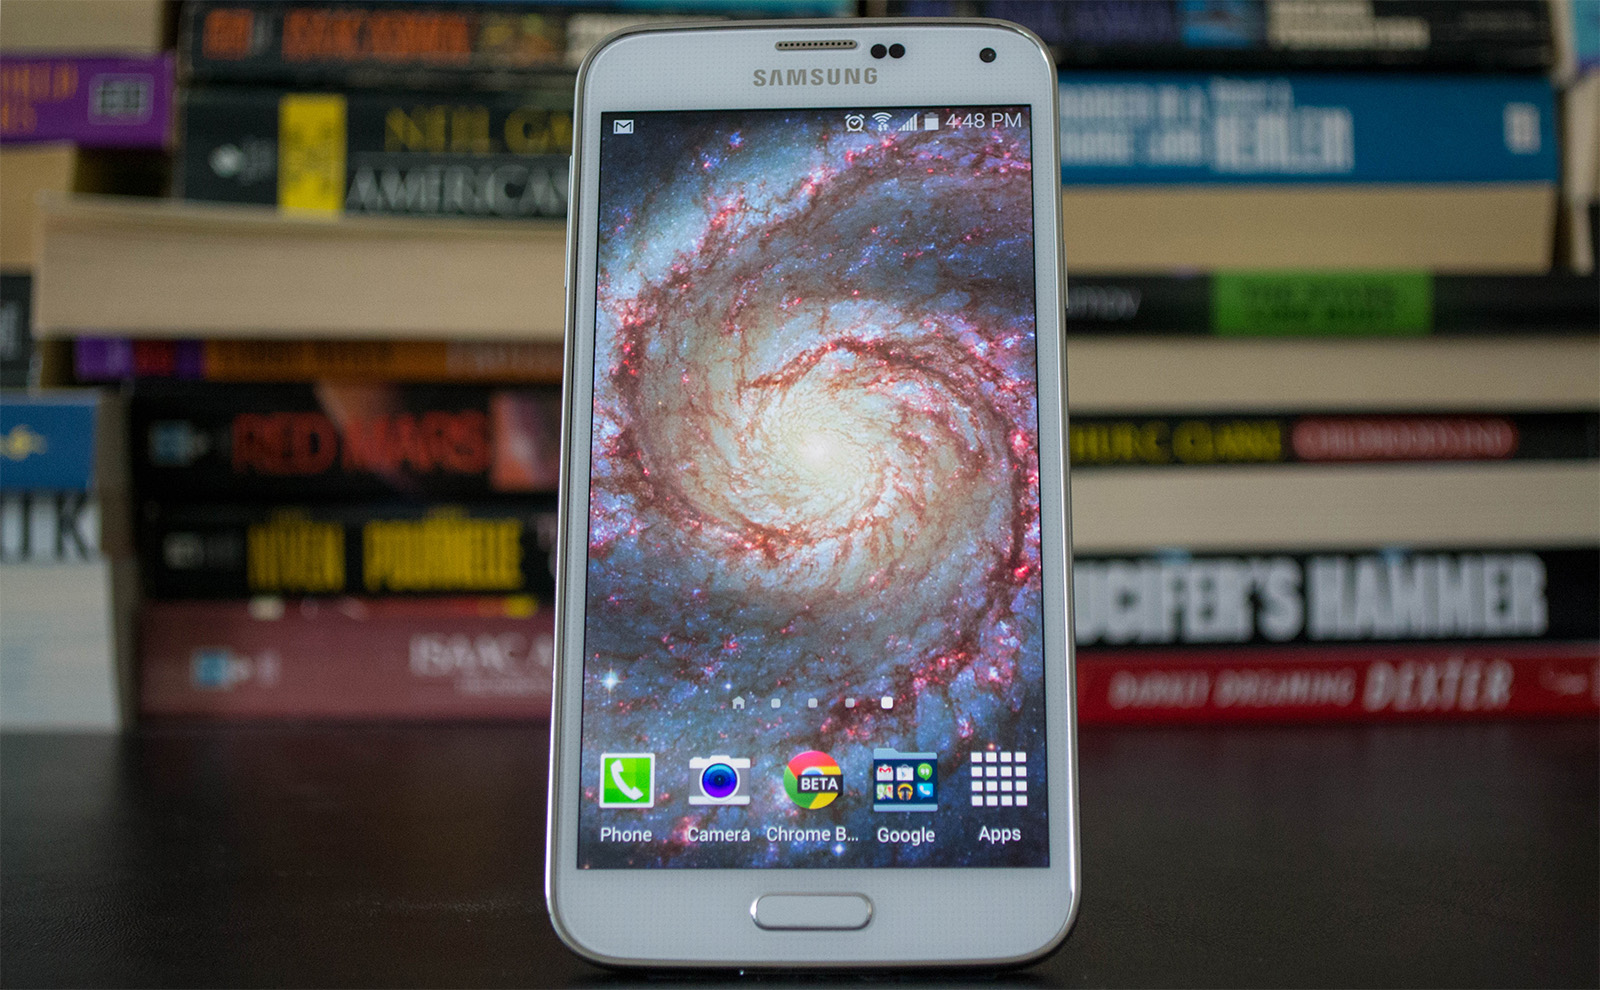 11 Essential Tweaks for Your New Samsung Galaxy S5 - Tested